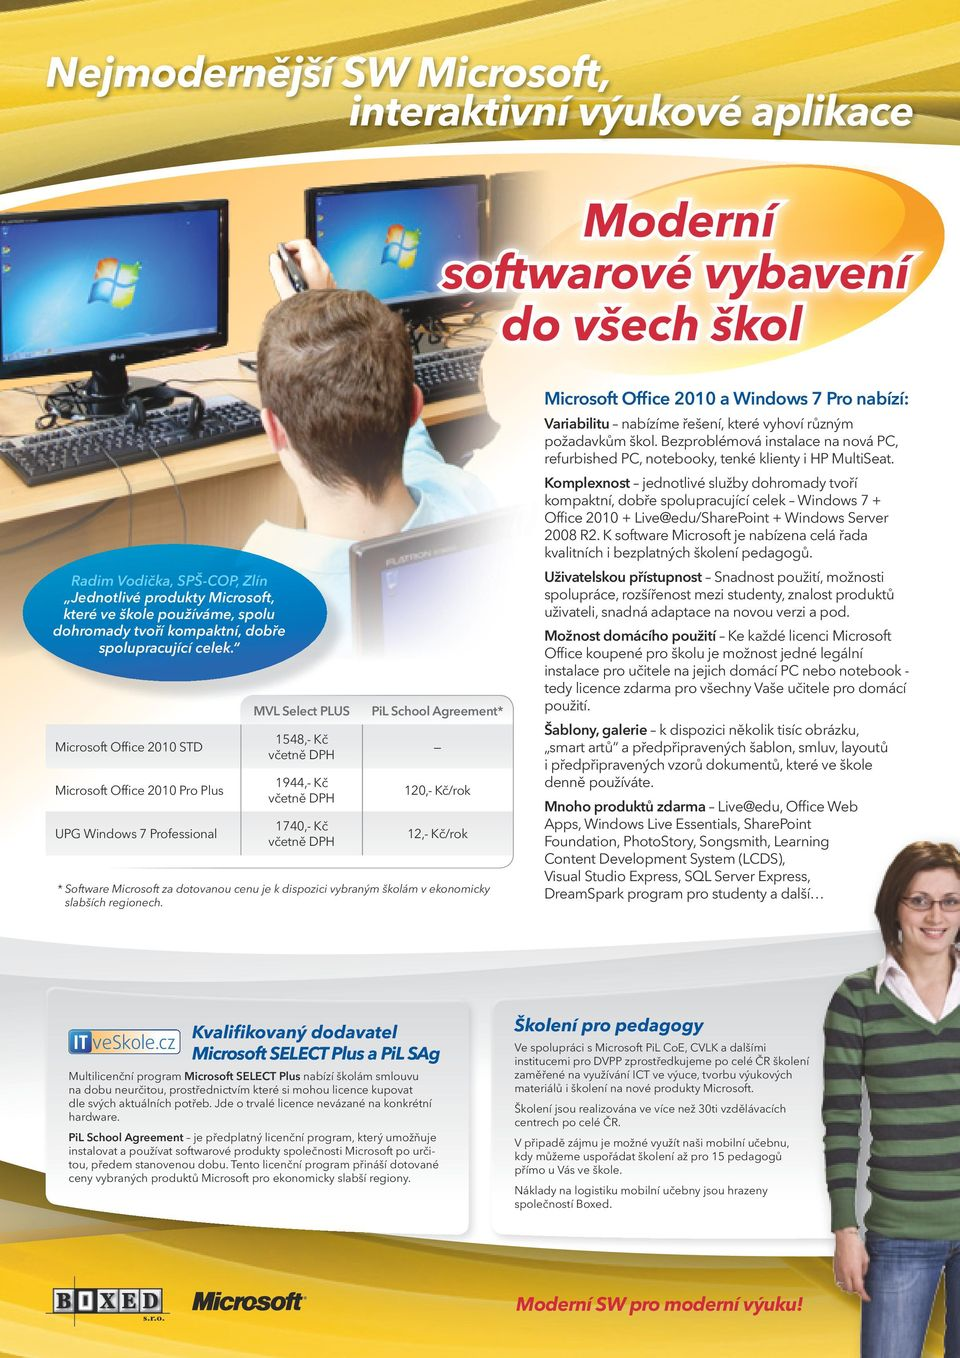 Microsoft Office 2010 STD Microsoft Office 2010 Pro Plus UPG Windows 7 Professional MVL Select PLUS 1548,- Kč 1944,- Kč 1740,- Kč PiL School Agreement* 120,- Kč/rok 12,- Kč/rok * Software Microsoft